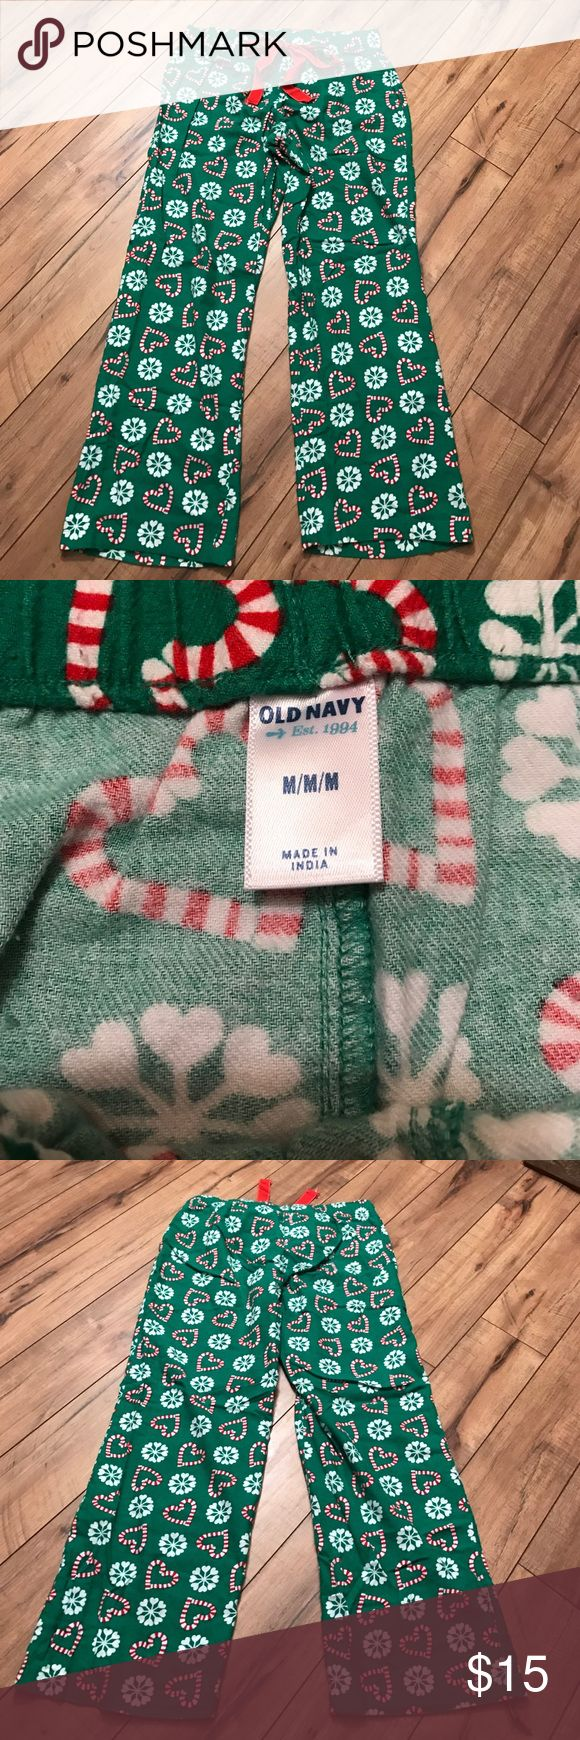 Old Navy Christmas pajama pants EUC. Old Navy Christmas pajama pants with candy cane hearts and snowflakes. Red ribbon tie. Very soft flannel-like feel. Warm and cozy. No defects. From non-smoking home. Size medium Old Navy Intimates & Sleepwear Pajamas